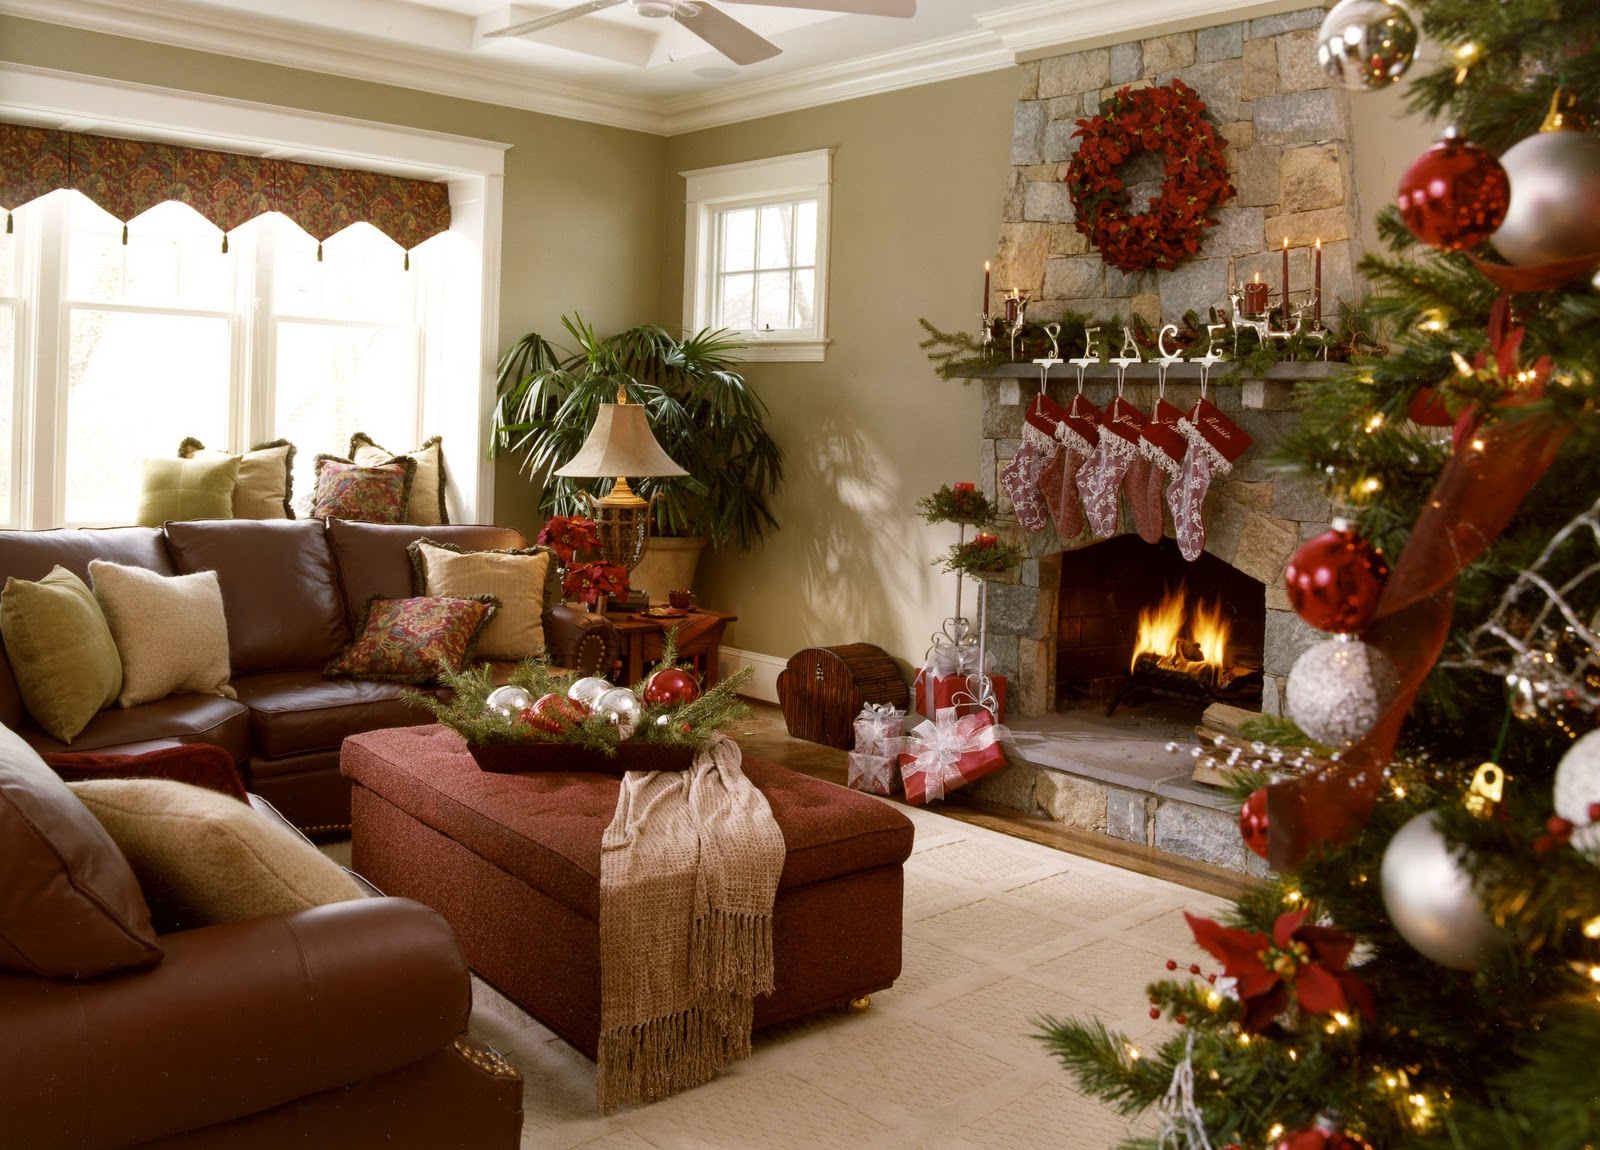 Nine ideas how to welcome the Christmas spirit  Interior Design Paradise